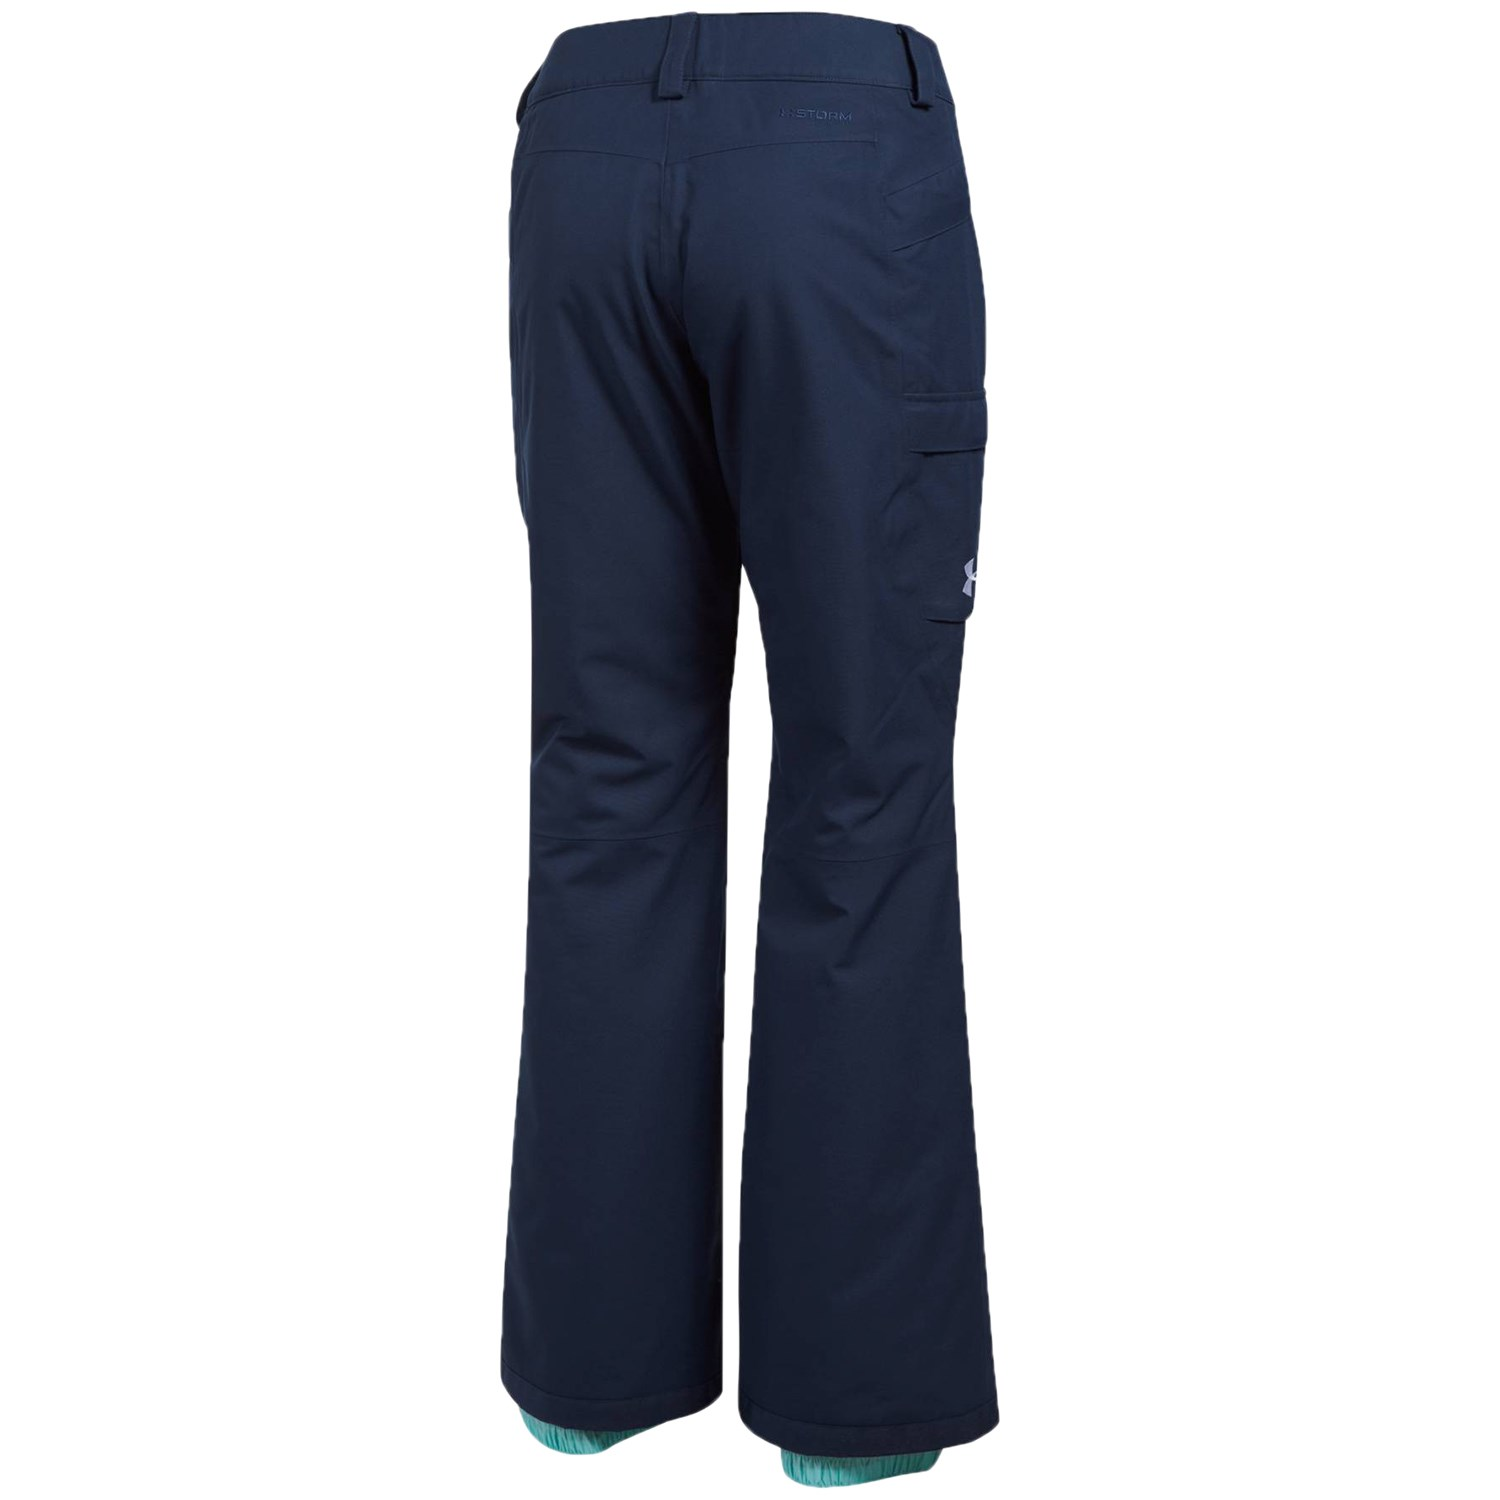 bb2892e92 Under Armour Coldgear® Infrared Chutes Pants - Women's | evo